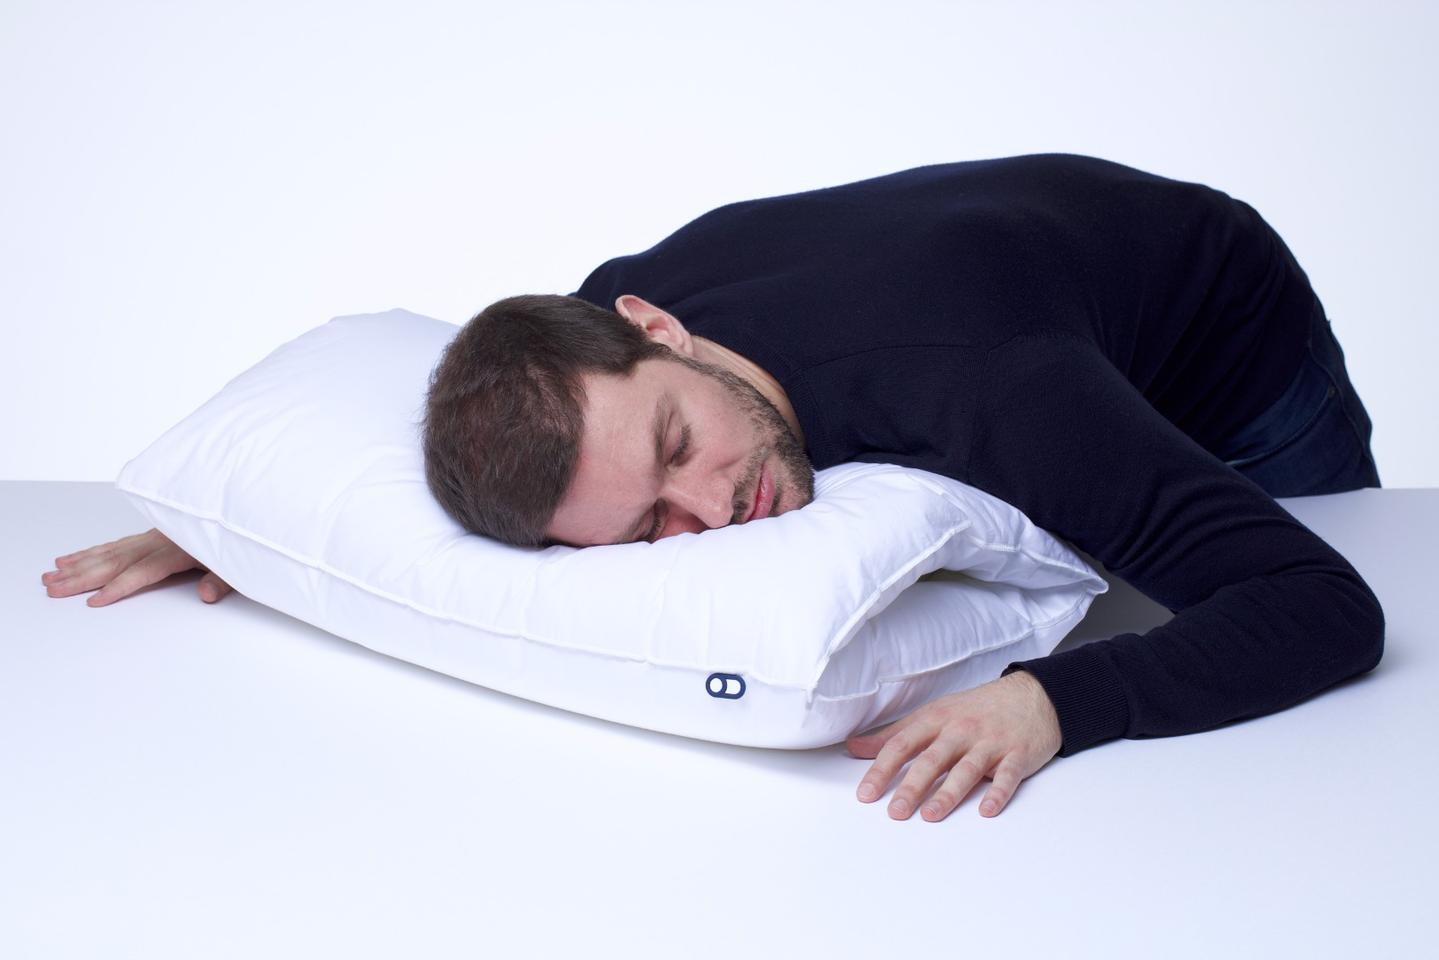 The Wopilo is designed to allow sleepers to choose their own softness-support ratio sweet spot